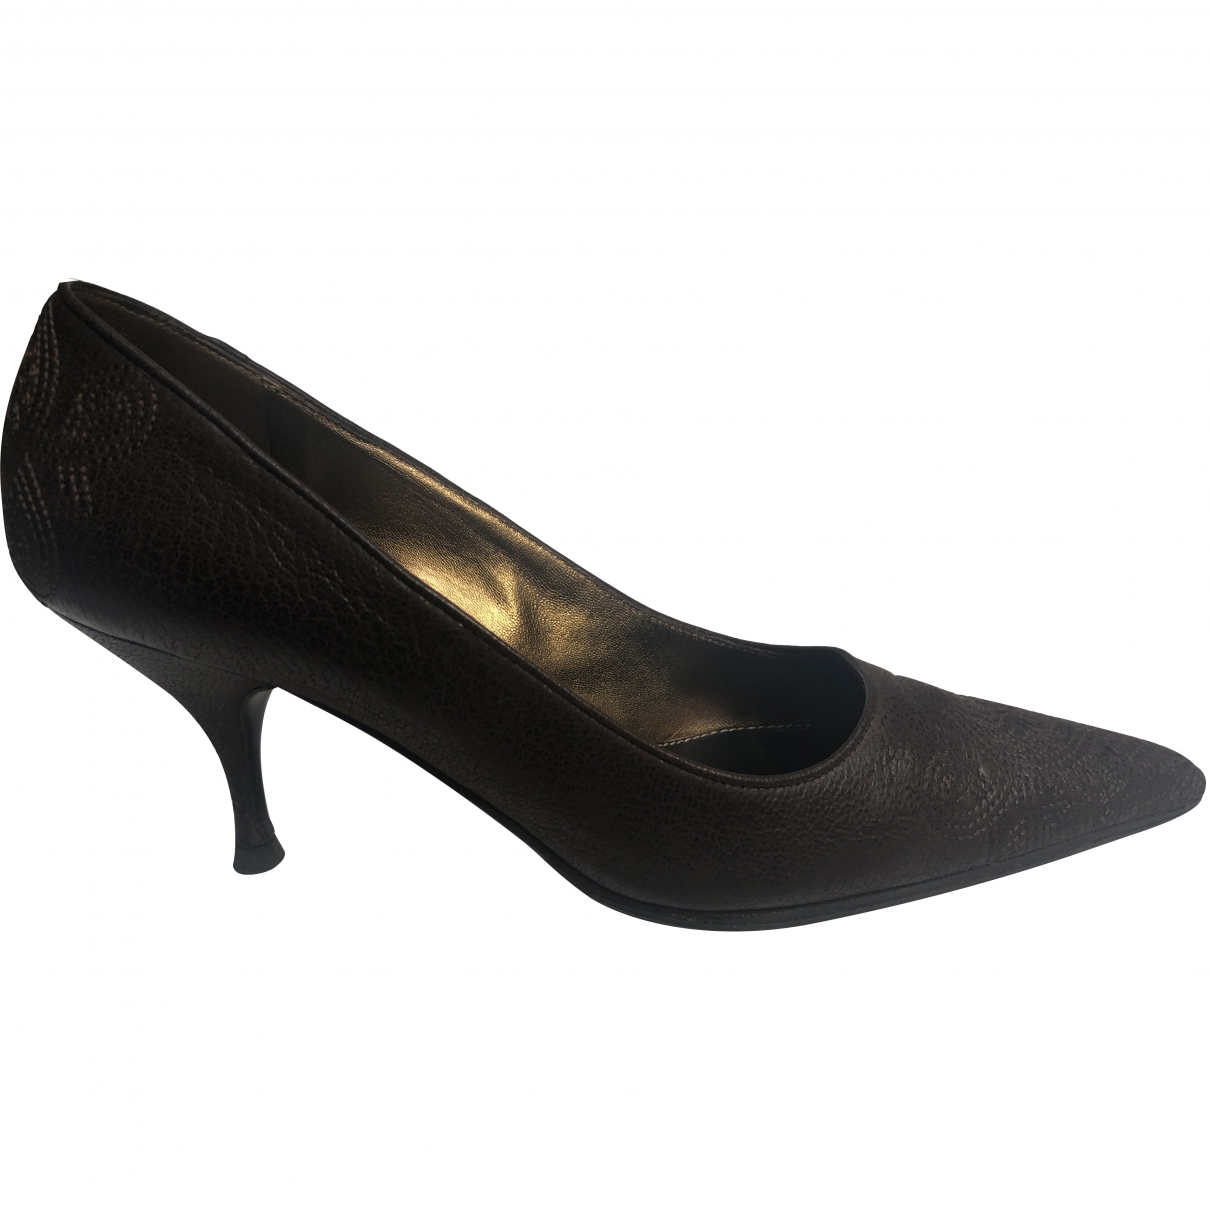 Prada \N Brown Leather Heels for Women 36 EU